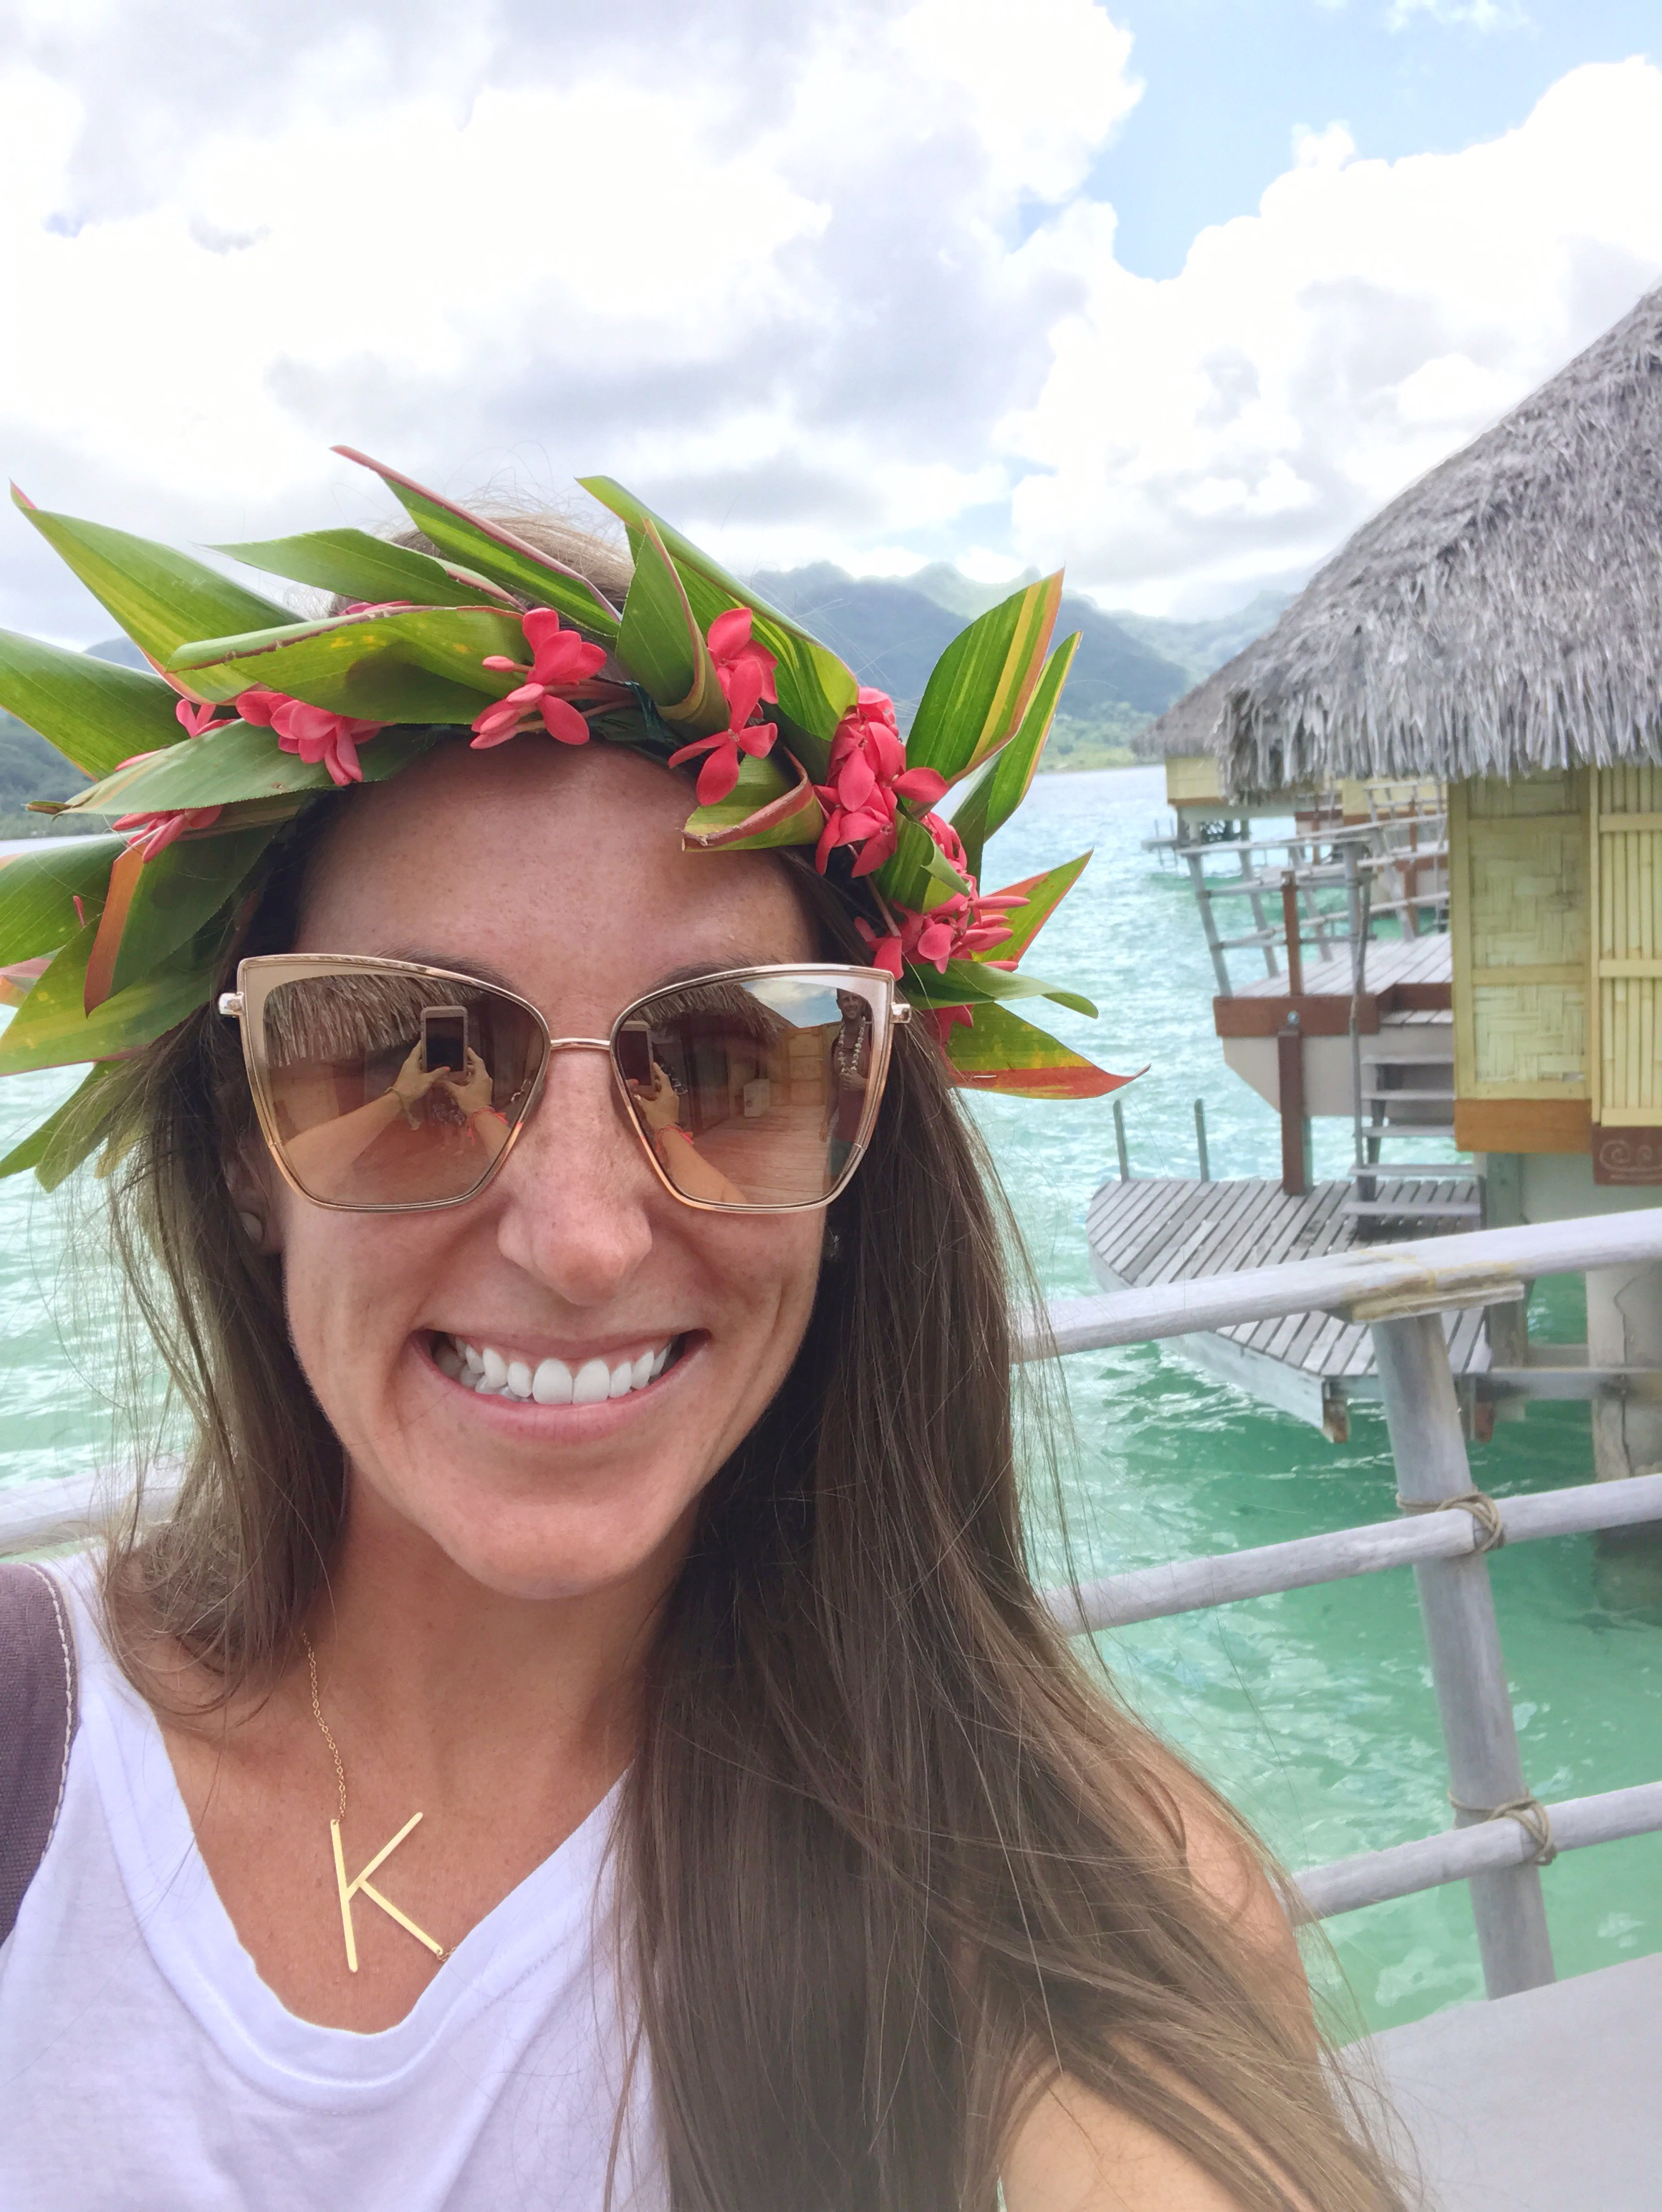 Our Tahiti Trip - Travel To Tahiti - Le Taha'a Resort + Spa, Relais Chateaux - French Polynesia Vacation - Overwater Bungalows - Trip to Tahiti - Bora Bora - Communikait by Kait Hanson